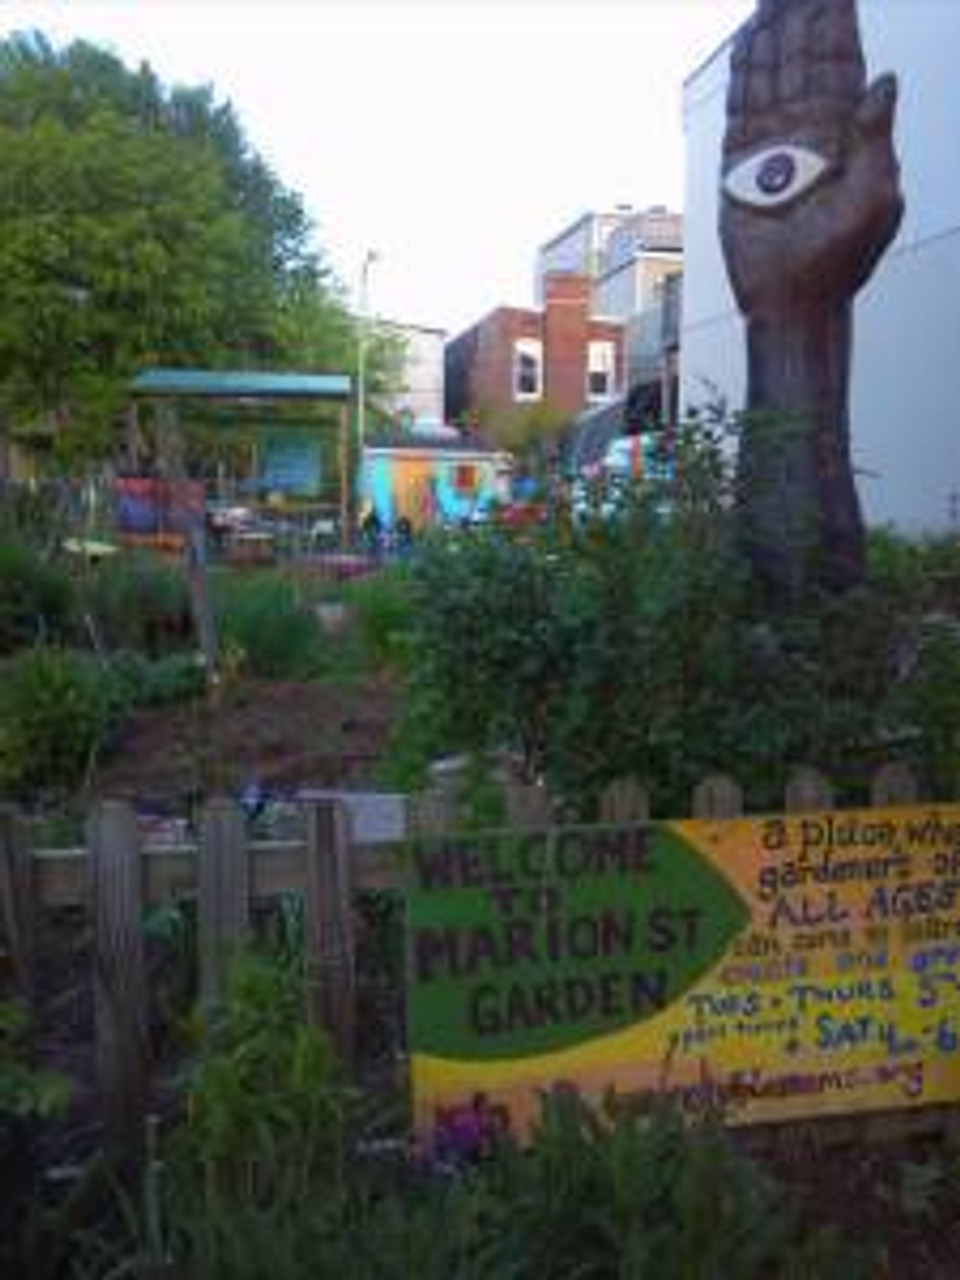 cool little community garden just a few houses down from my friend